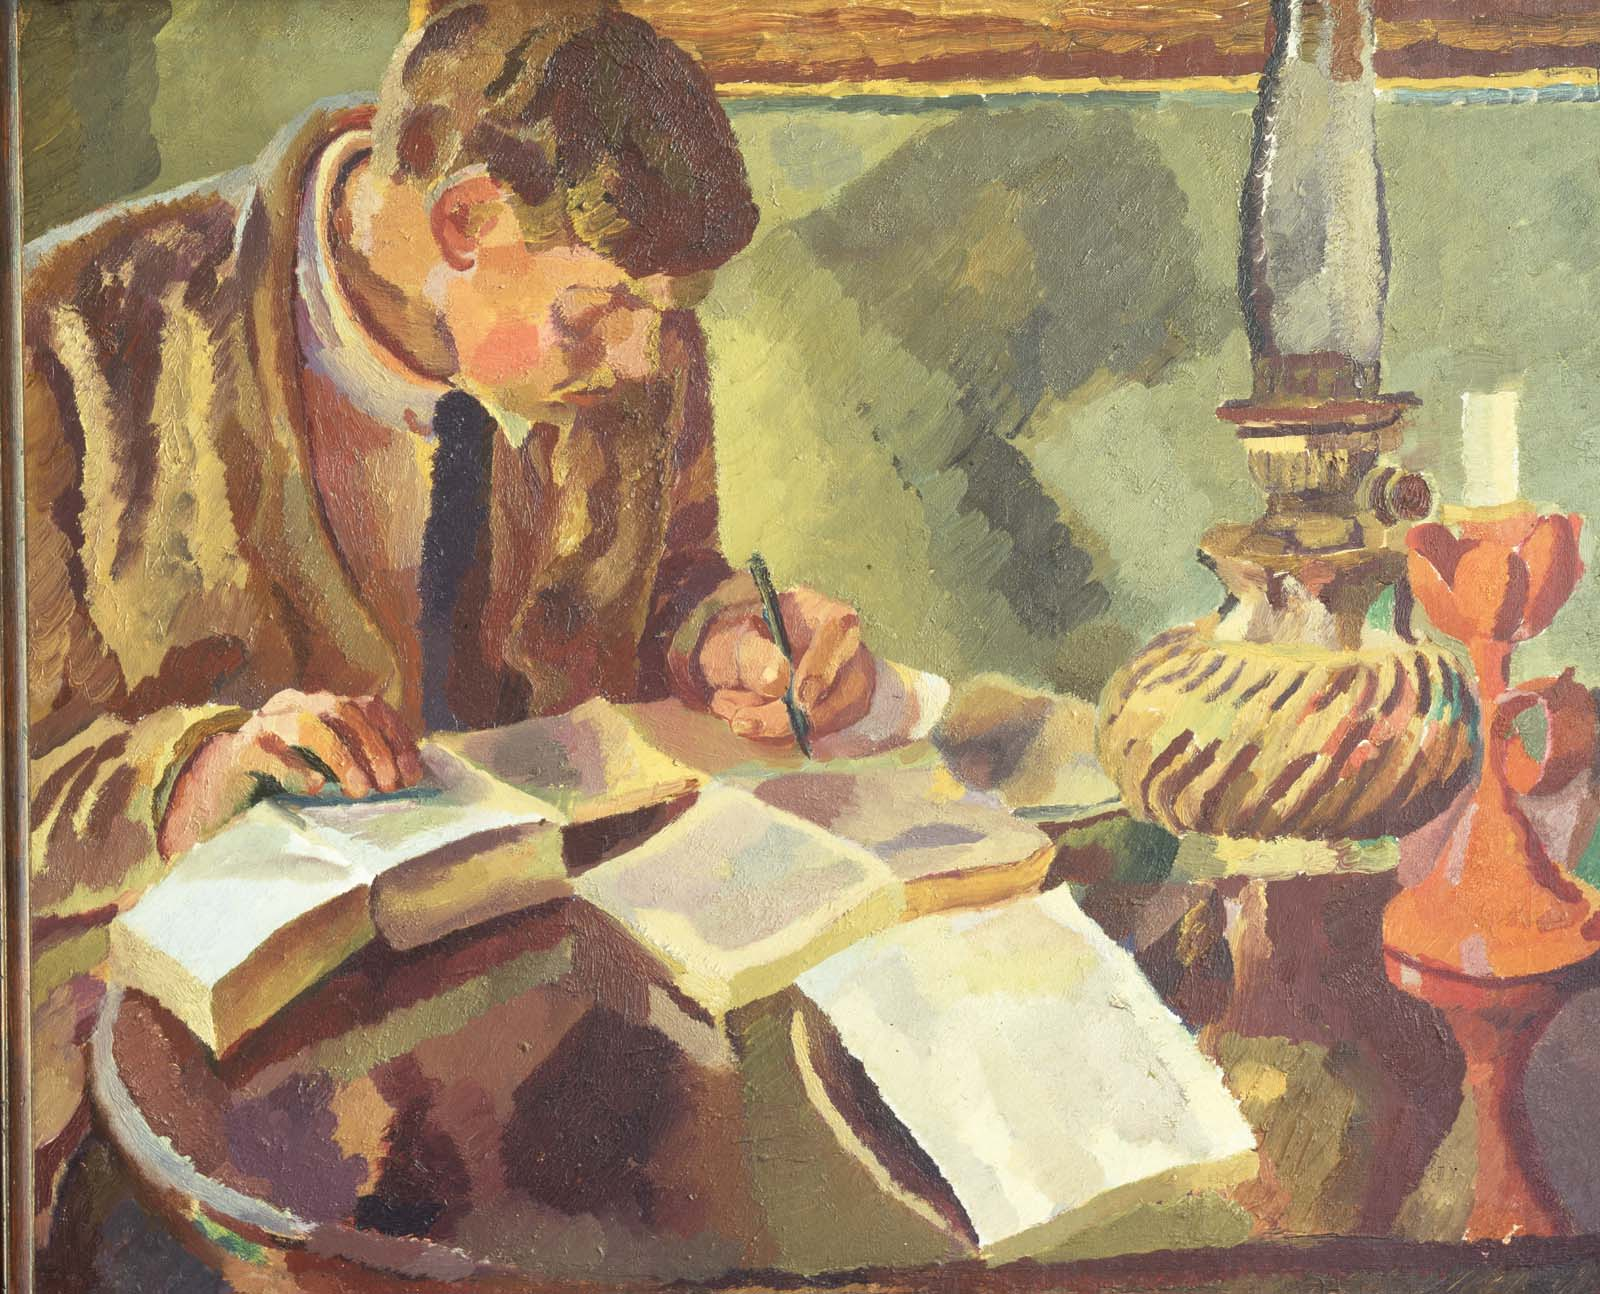 painting of a man with short hair, suit and tie leaning over a desk with books whilst writing